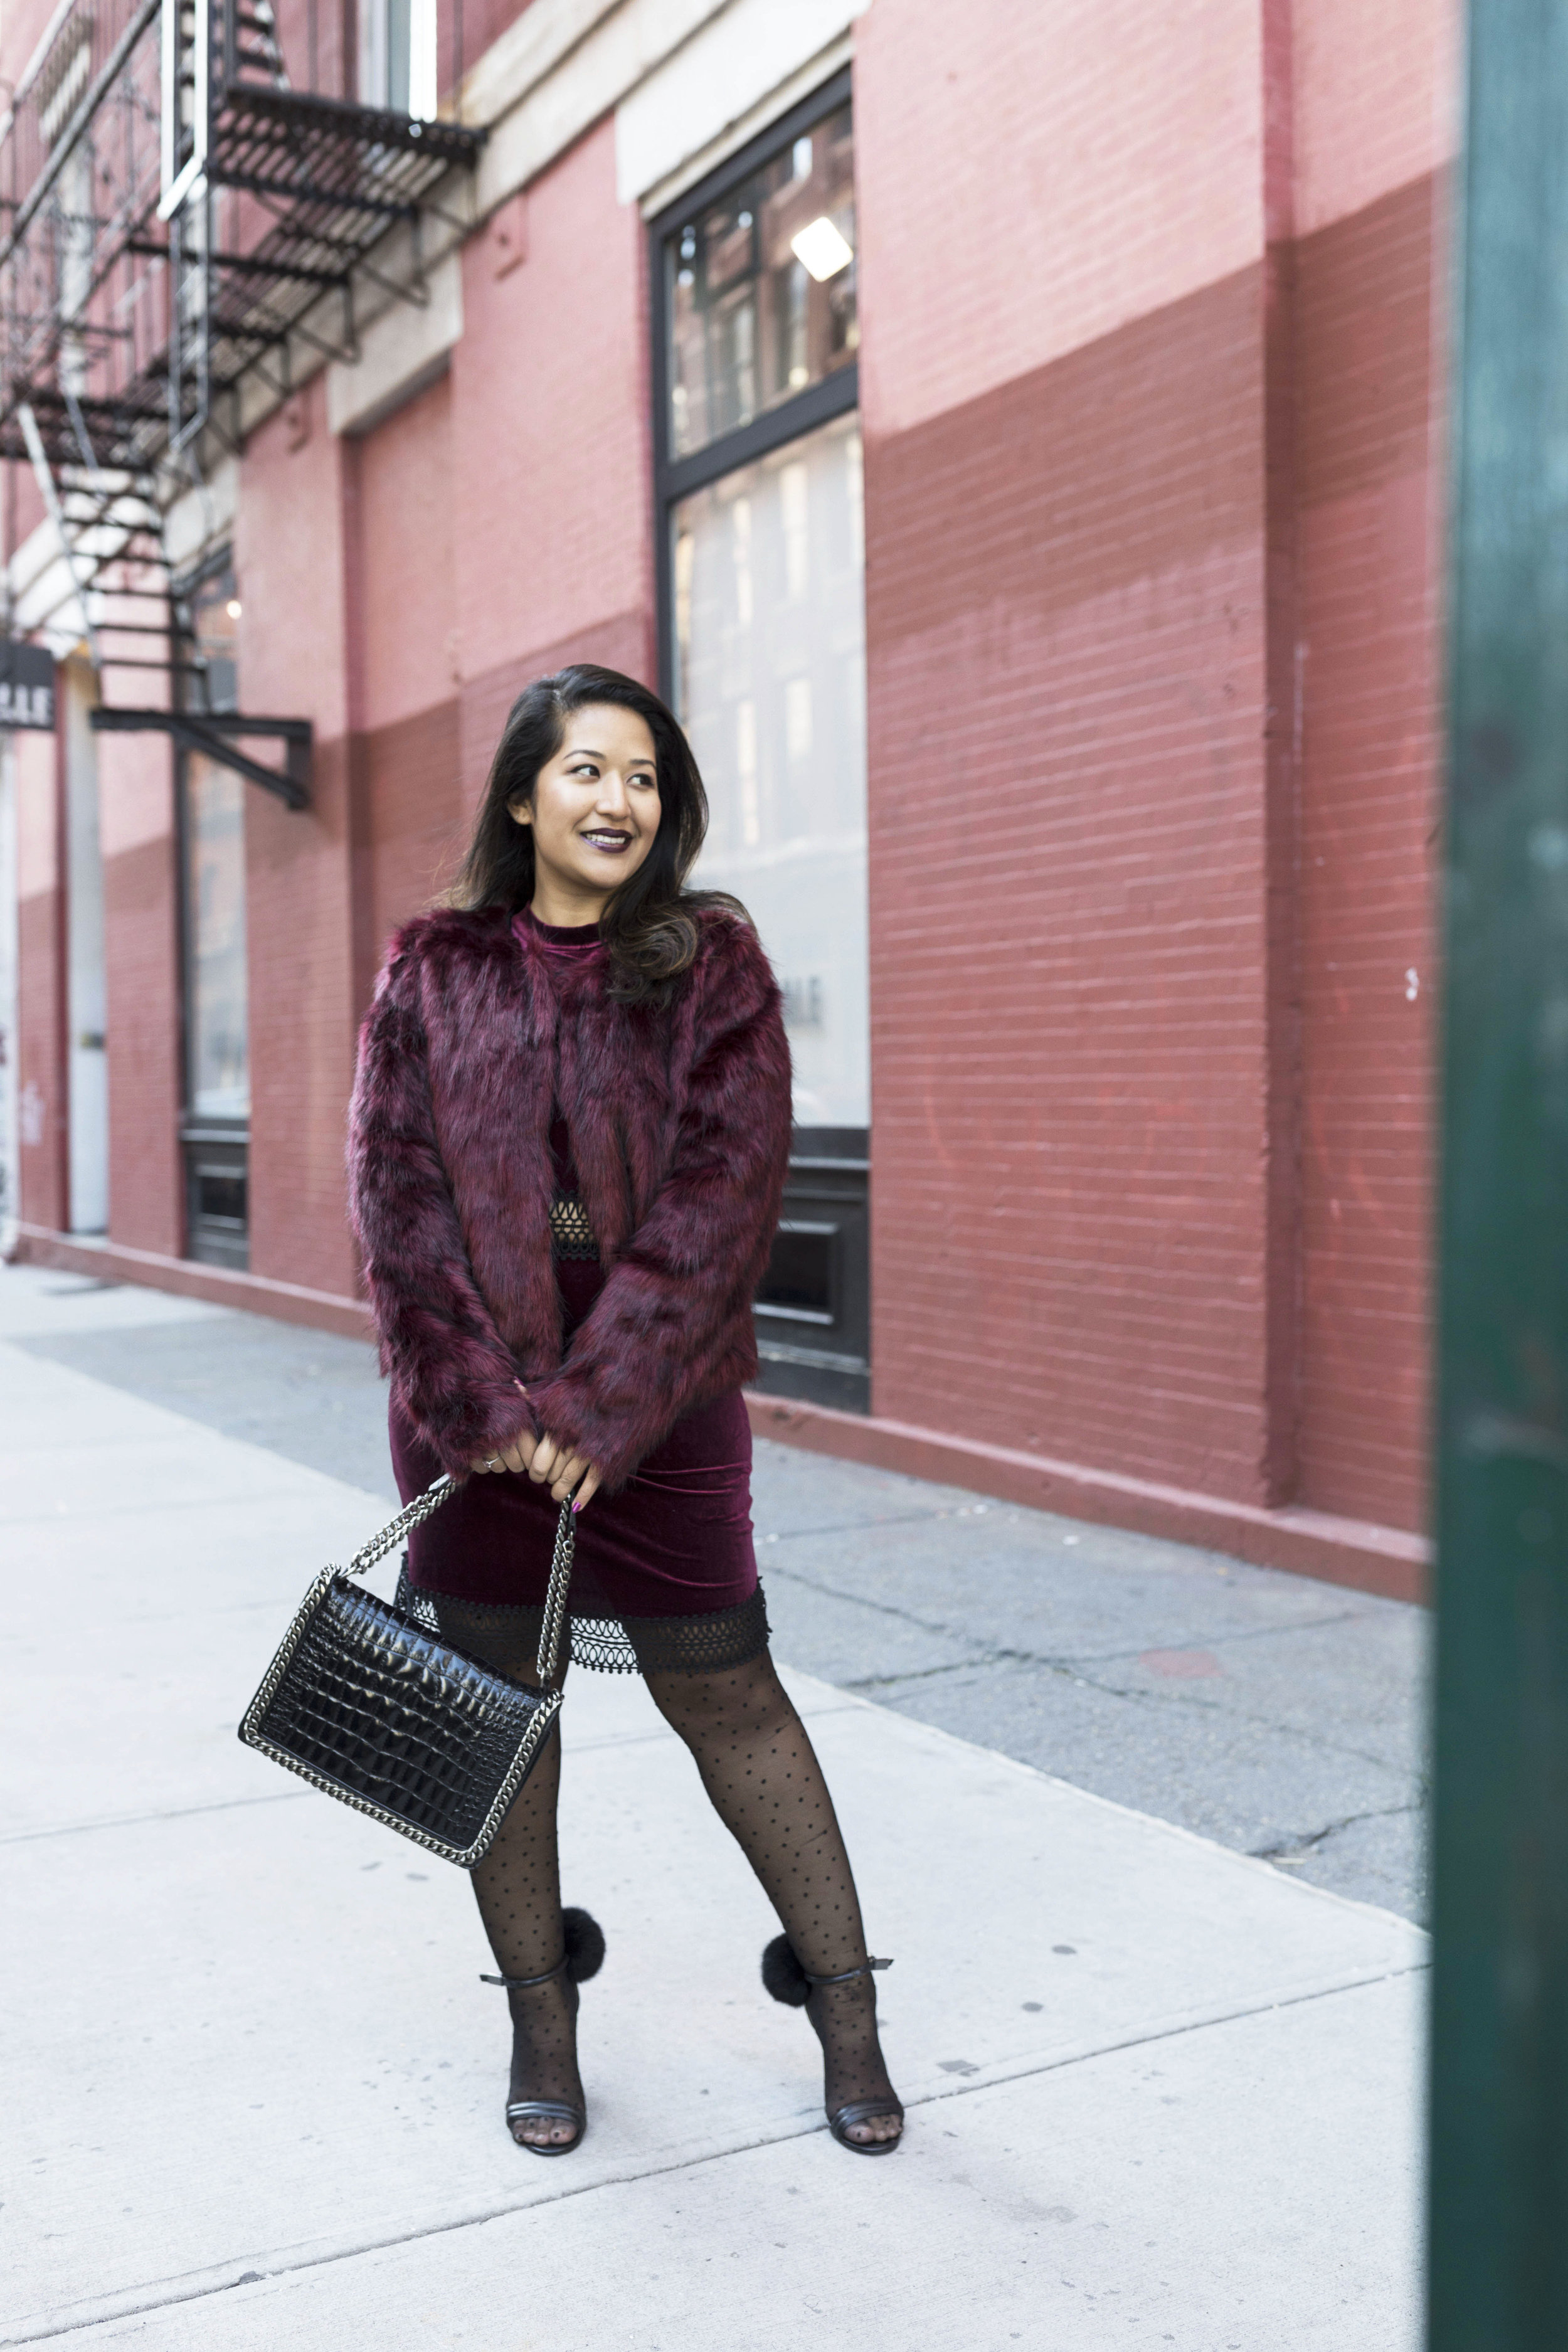 Krity S x Holiday Outfit x Century 21 Burgundy Velvet Dress and Faux Fur2.jpg